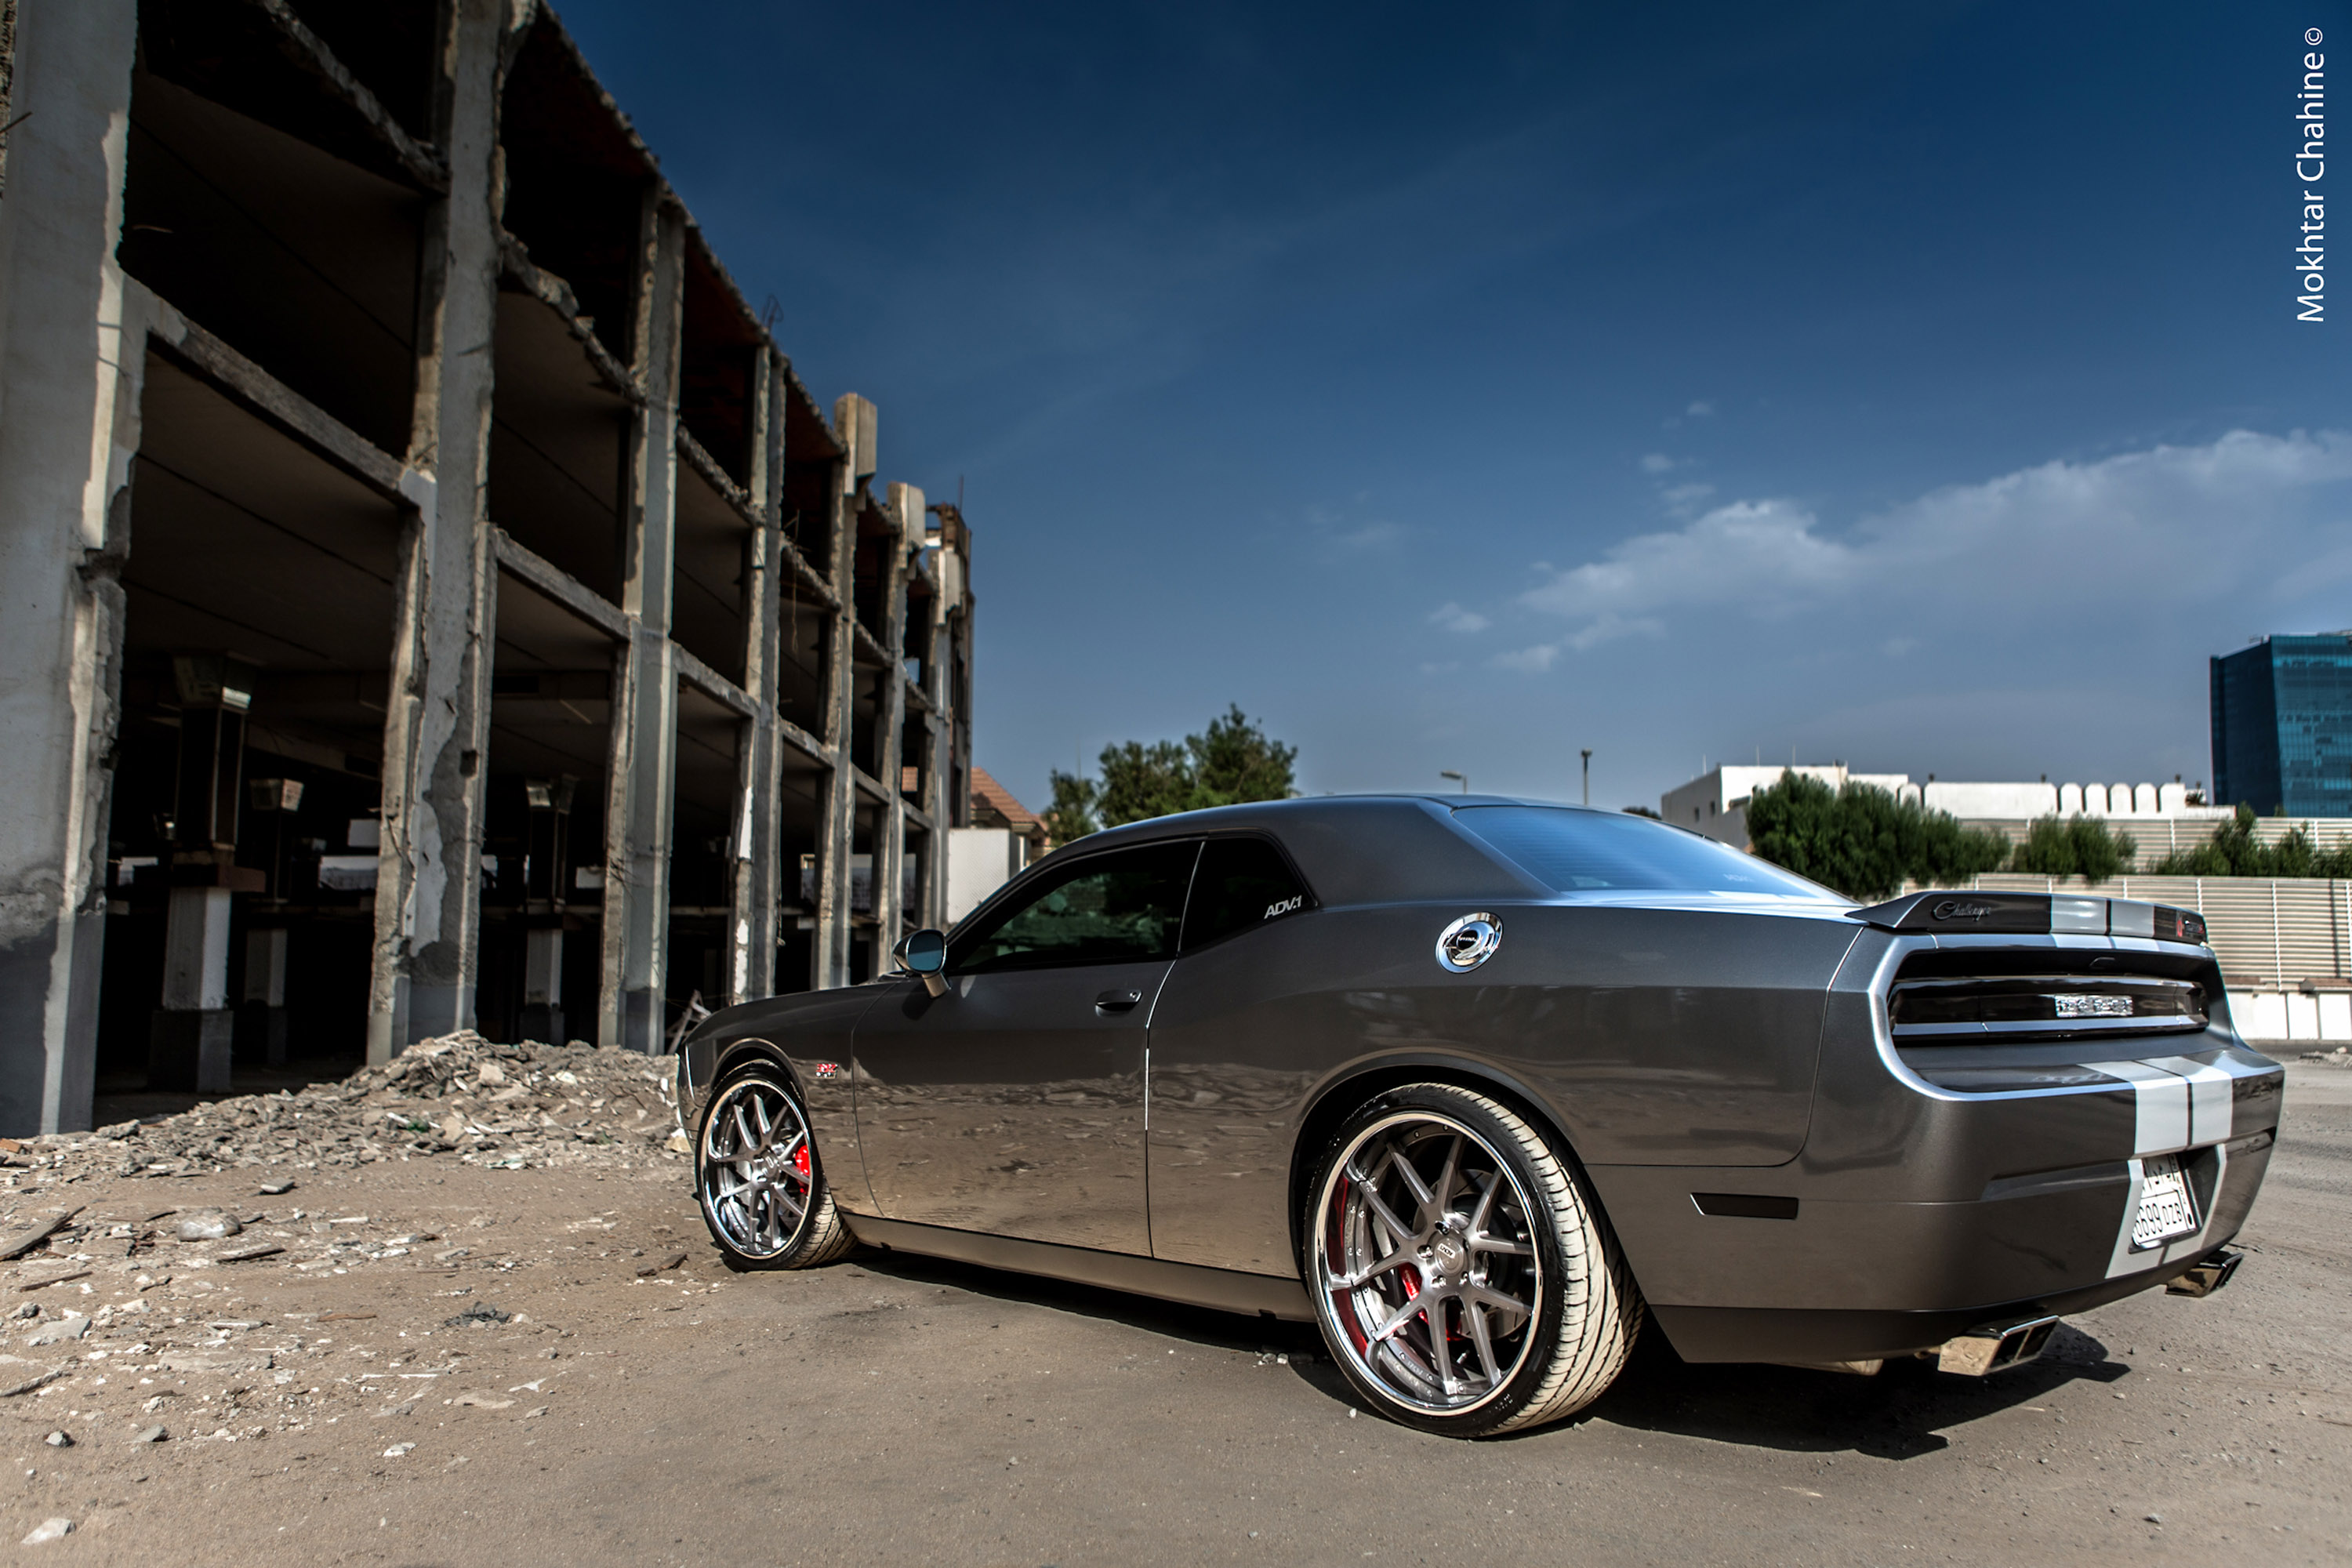 Adv 1 Dodge Challenger Srt8 Picture 73603